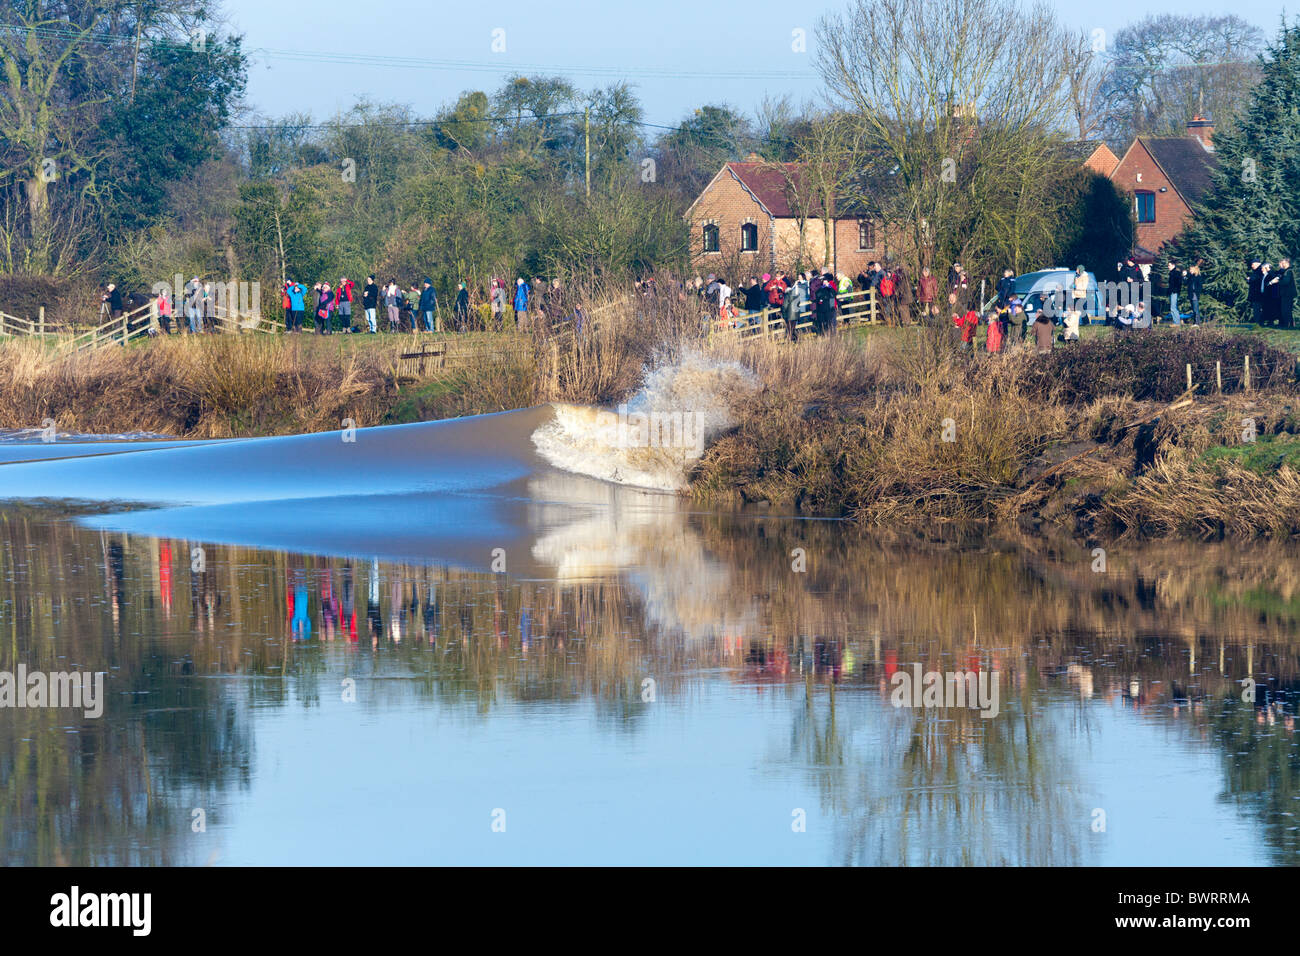 People watching the Severn Bore breaking against the riverbank at Minsterworth, Gloucestershire on 1/3/2010 - Stock Image